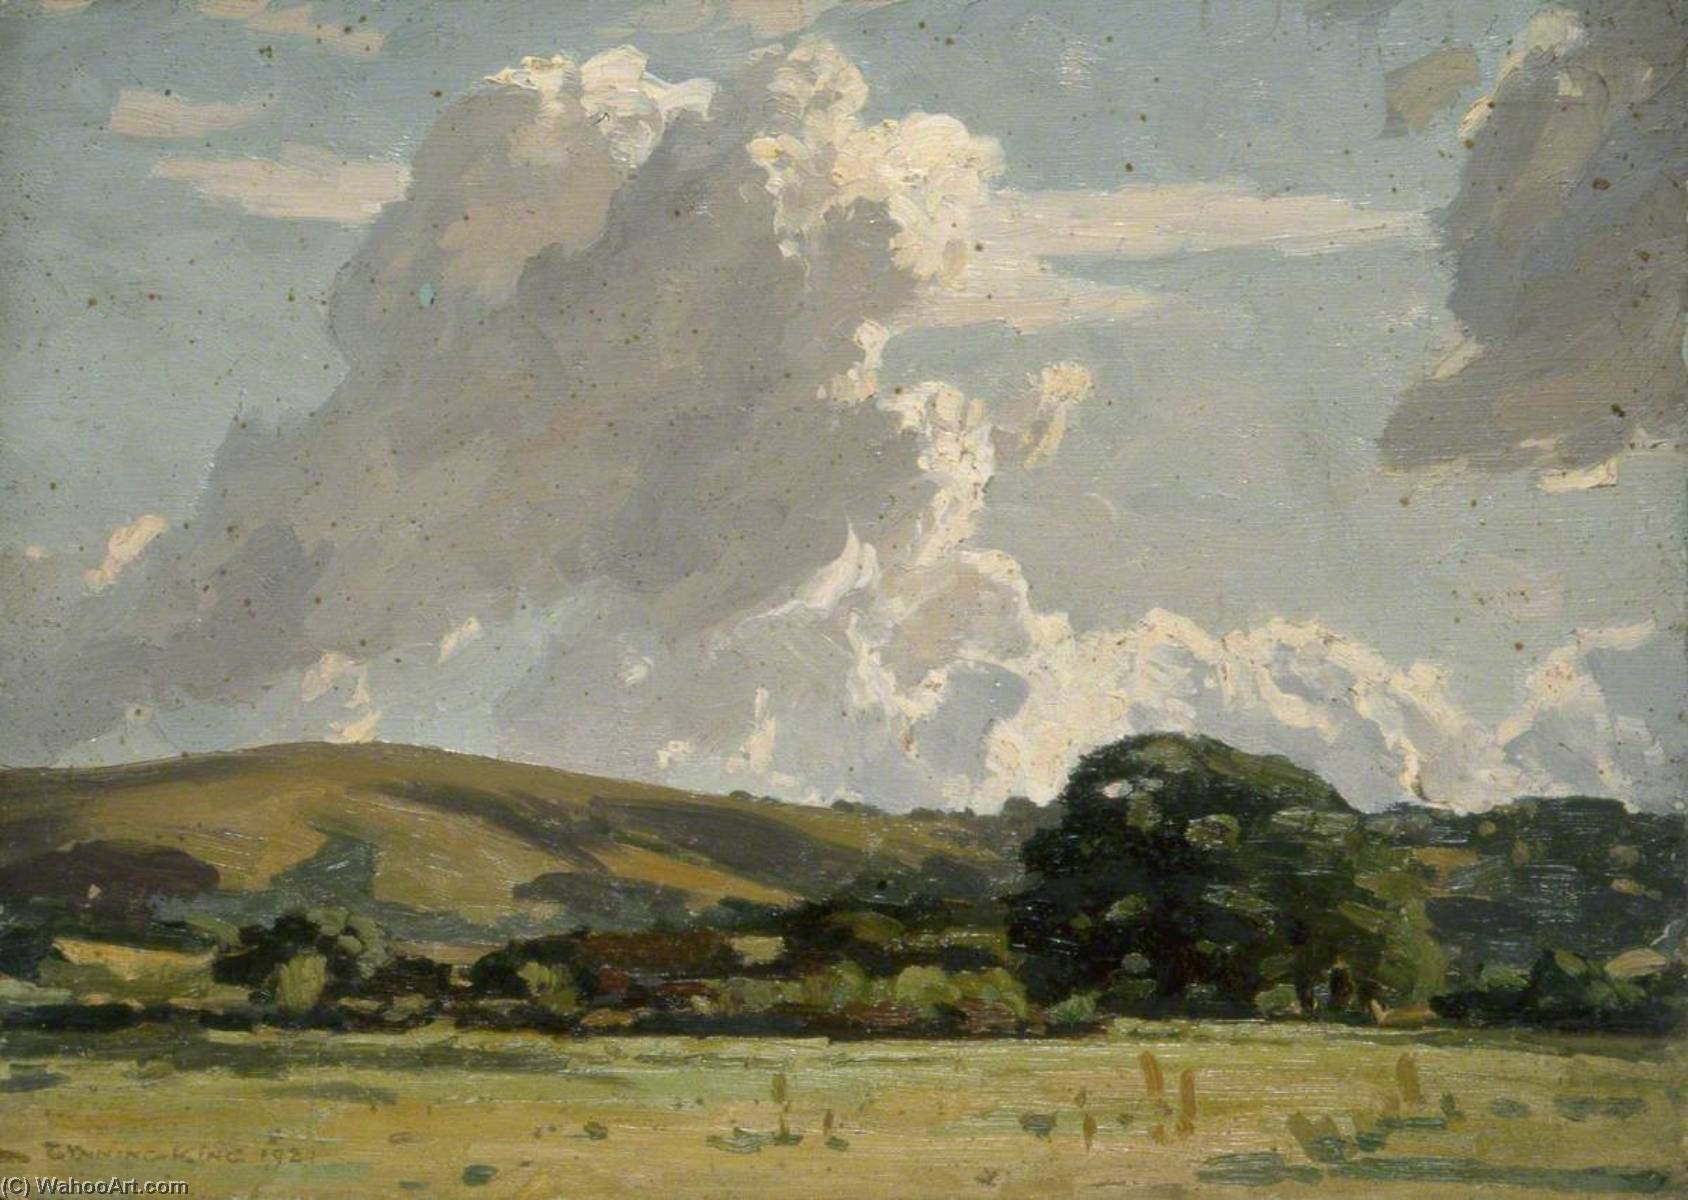 Order Oil Painting : Landscape and Cloud Study, 1921 by Gunning King | ArtsDot.com